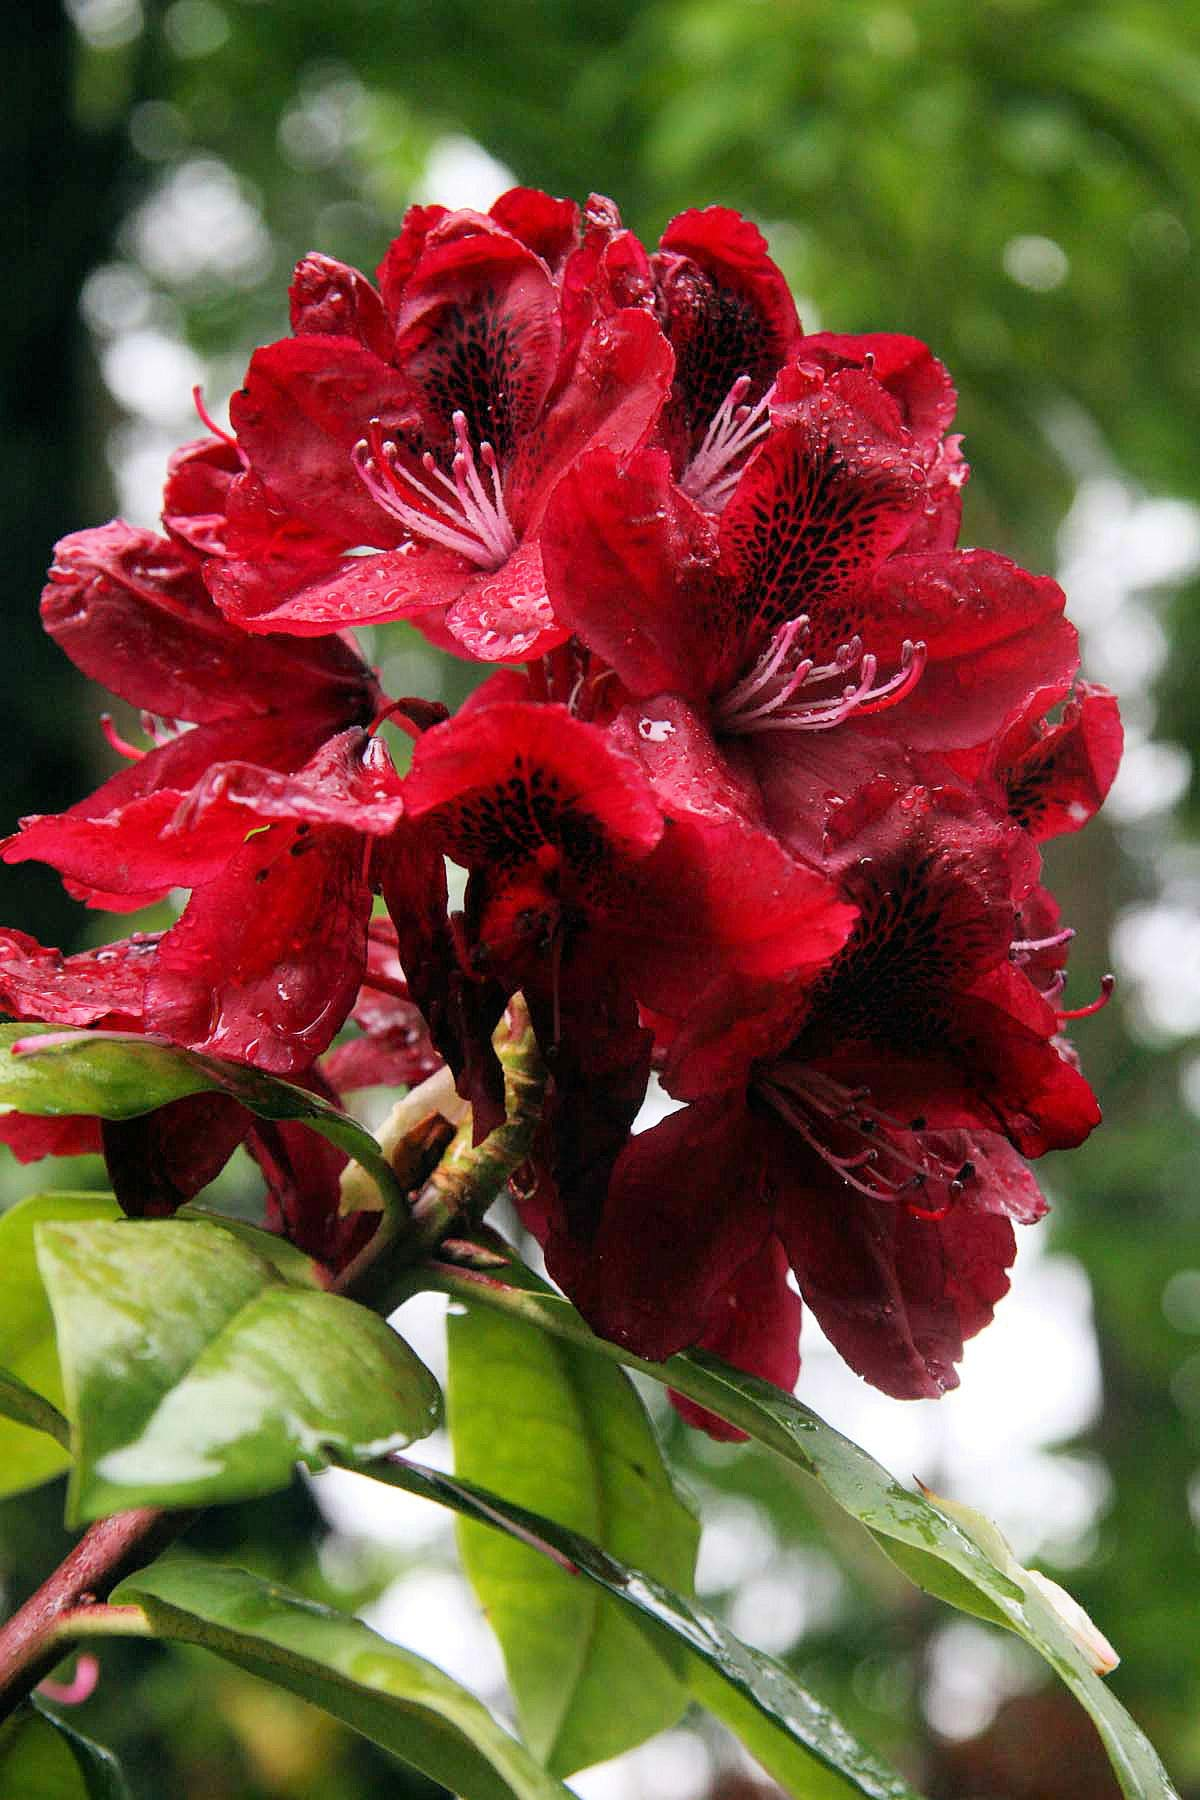 Rhododendron Moser's Maroon - Deep Red Blooms with Rays of Black on Petals - Grows Five Feet Tall (8'' to 12'' Wide Plant - Typically Two Gallon)